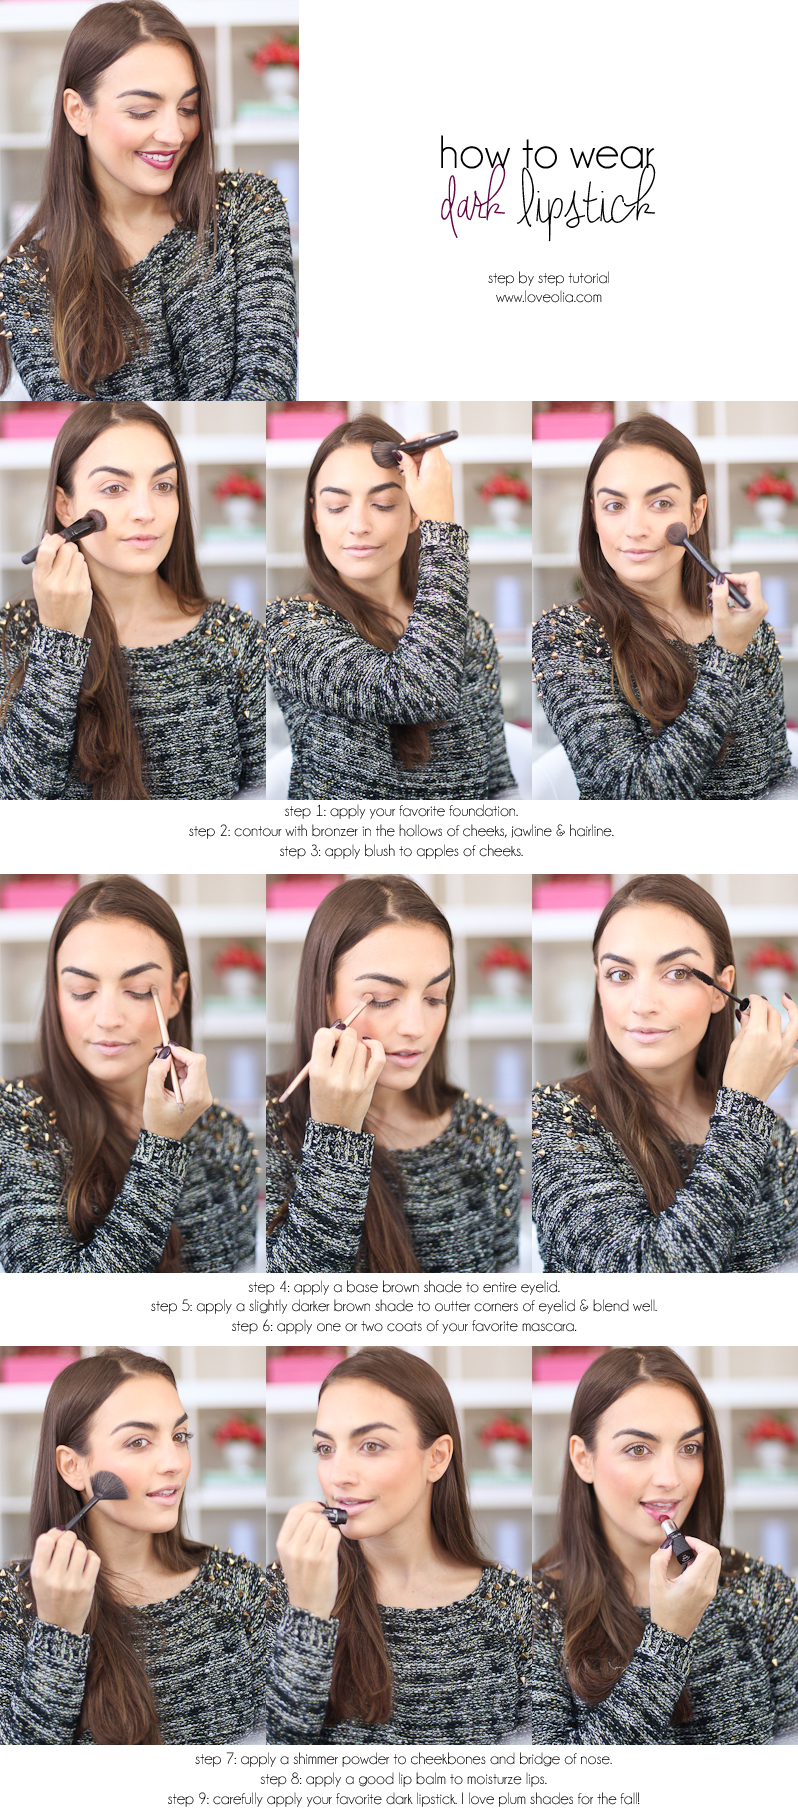 how to wear dark lipstick step by step makeup tutorial